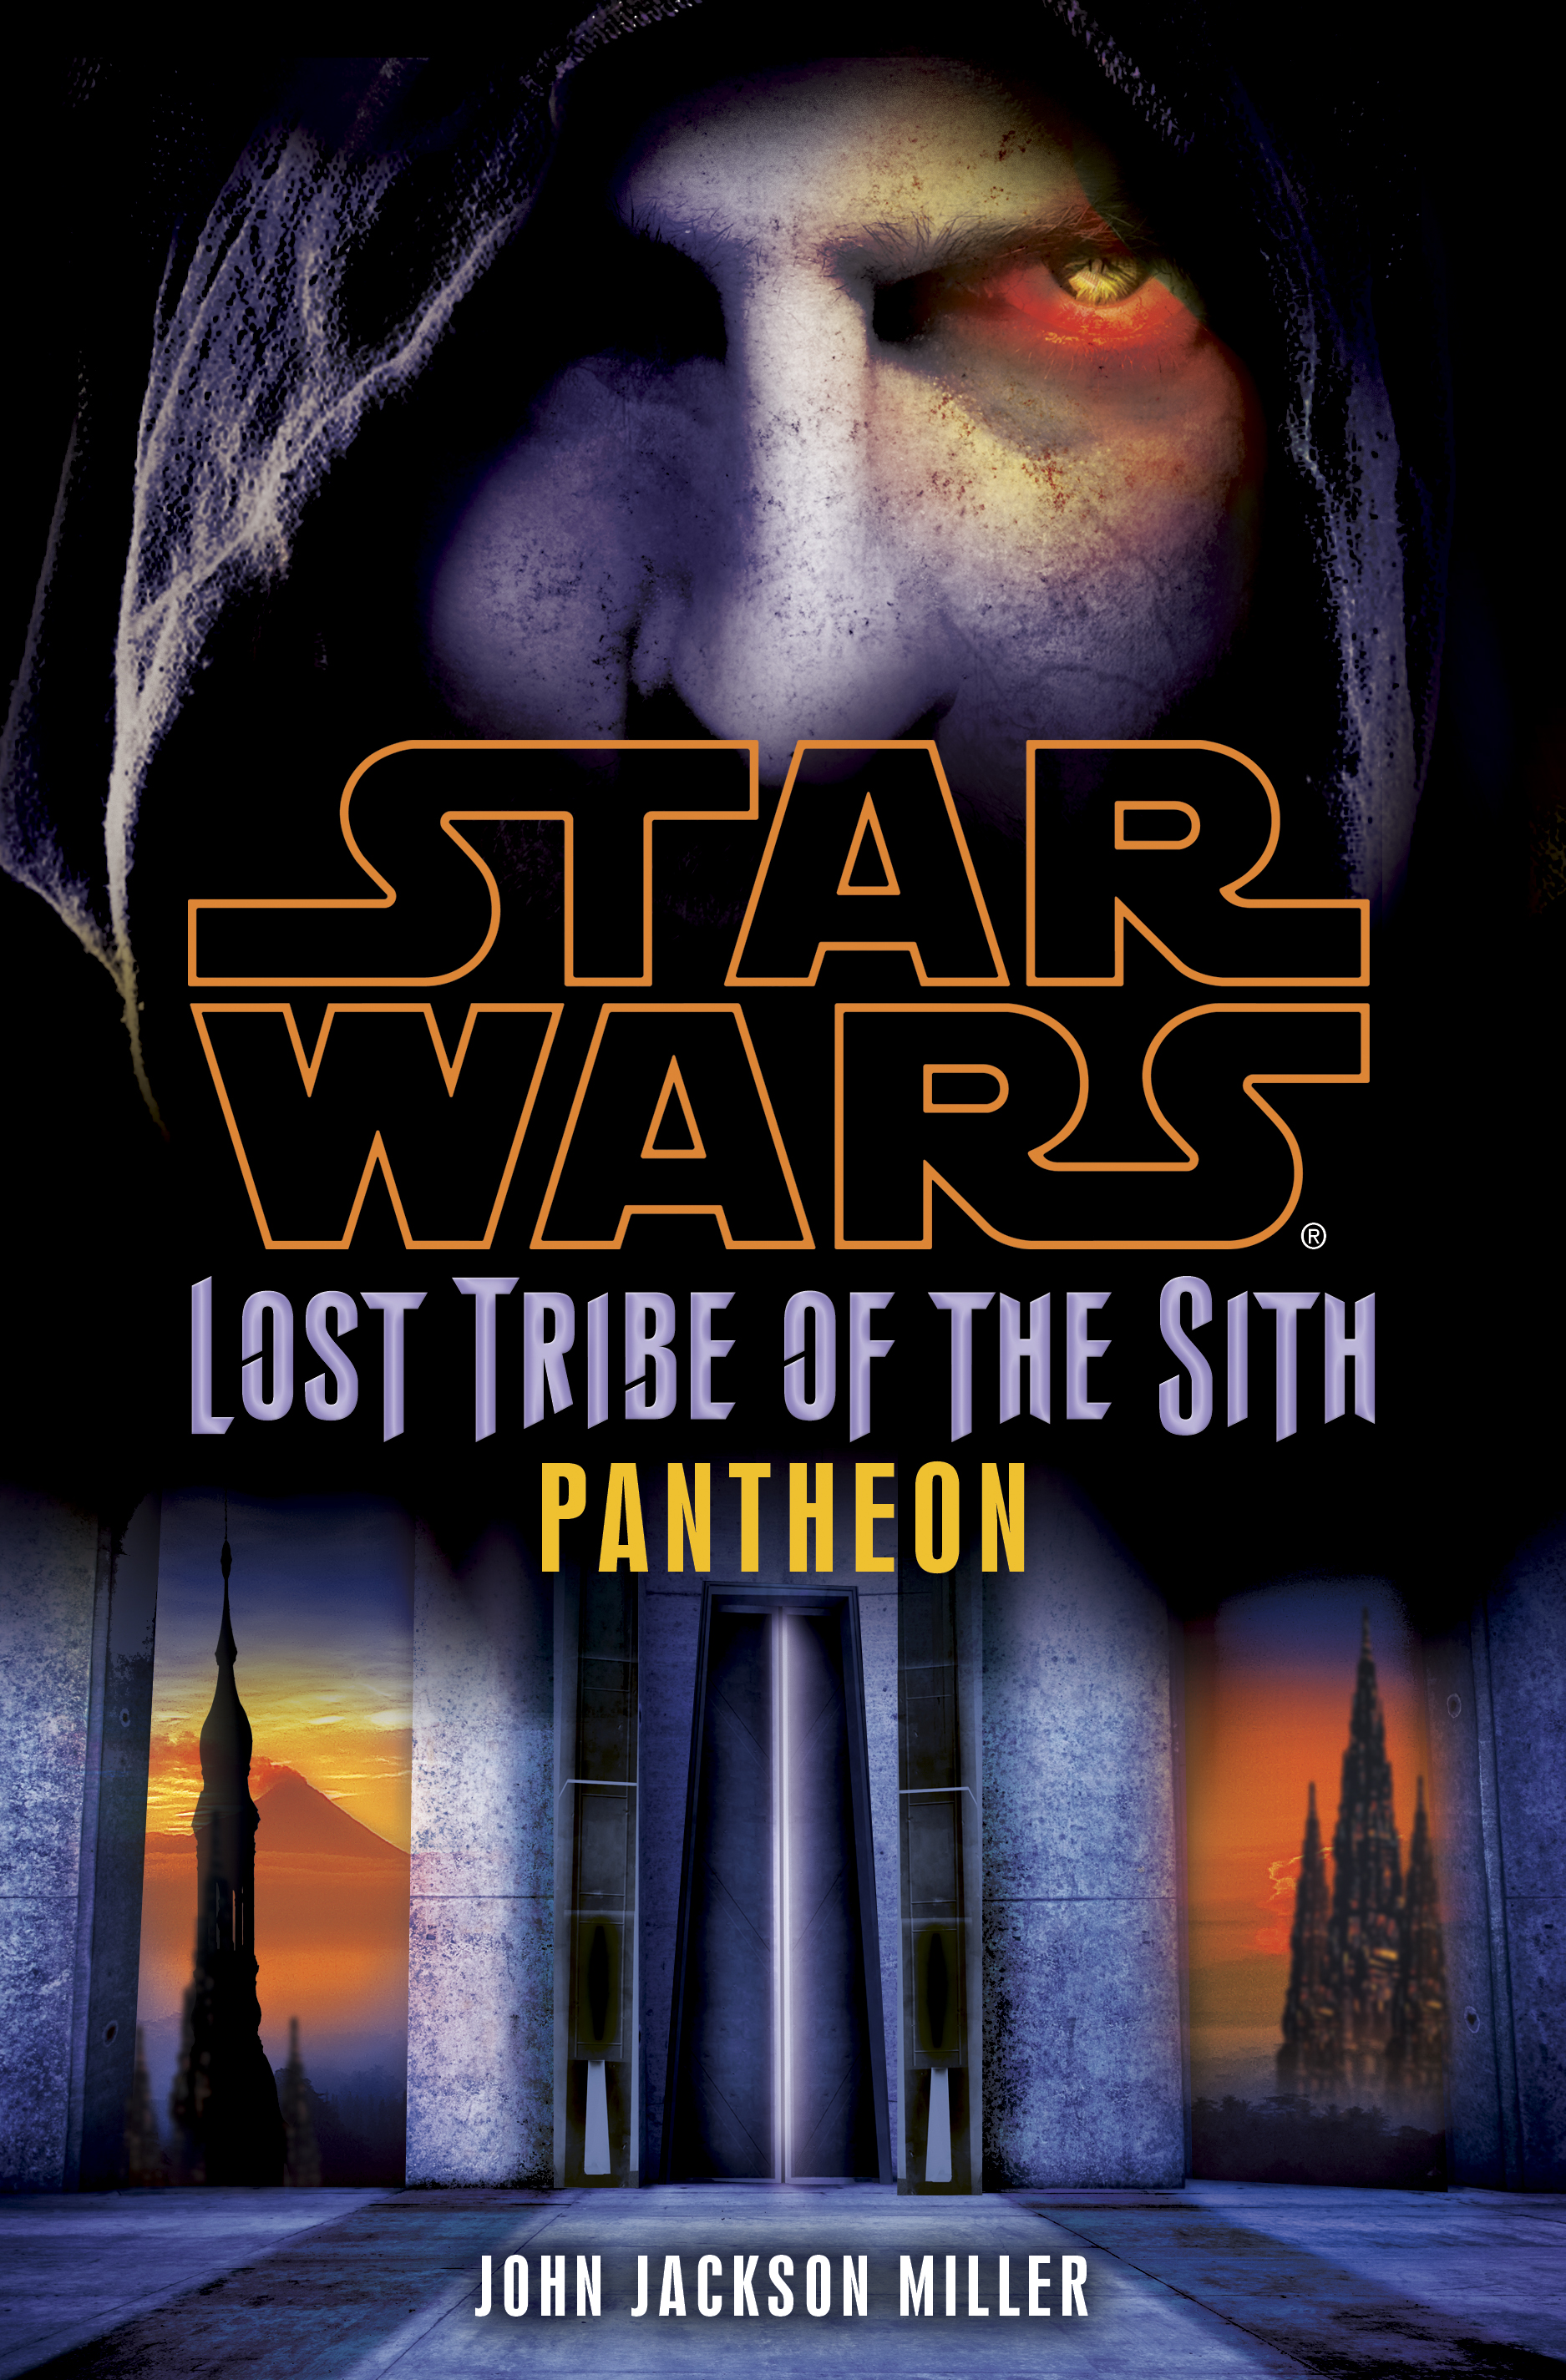 Lost Tribe of the Sith: Pantheon